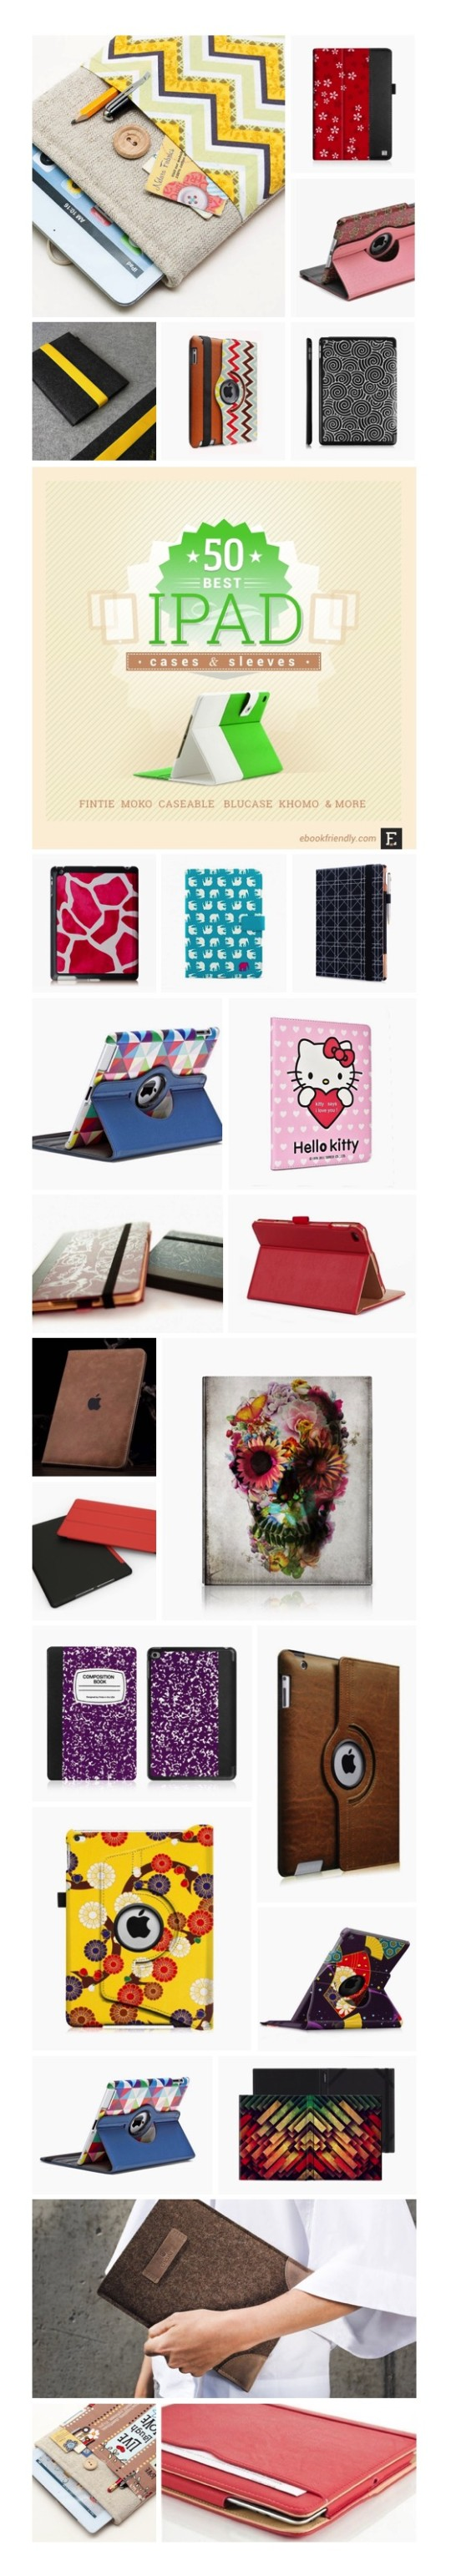 Best iPad case covers #infographic